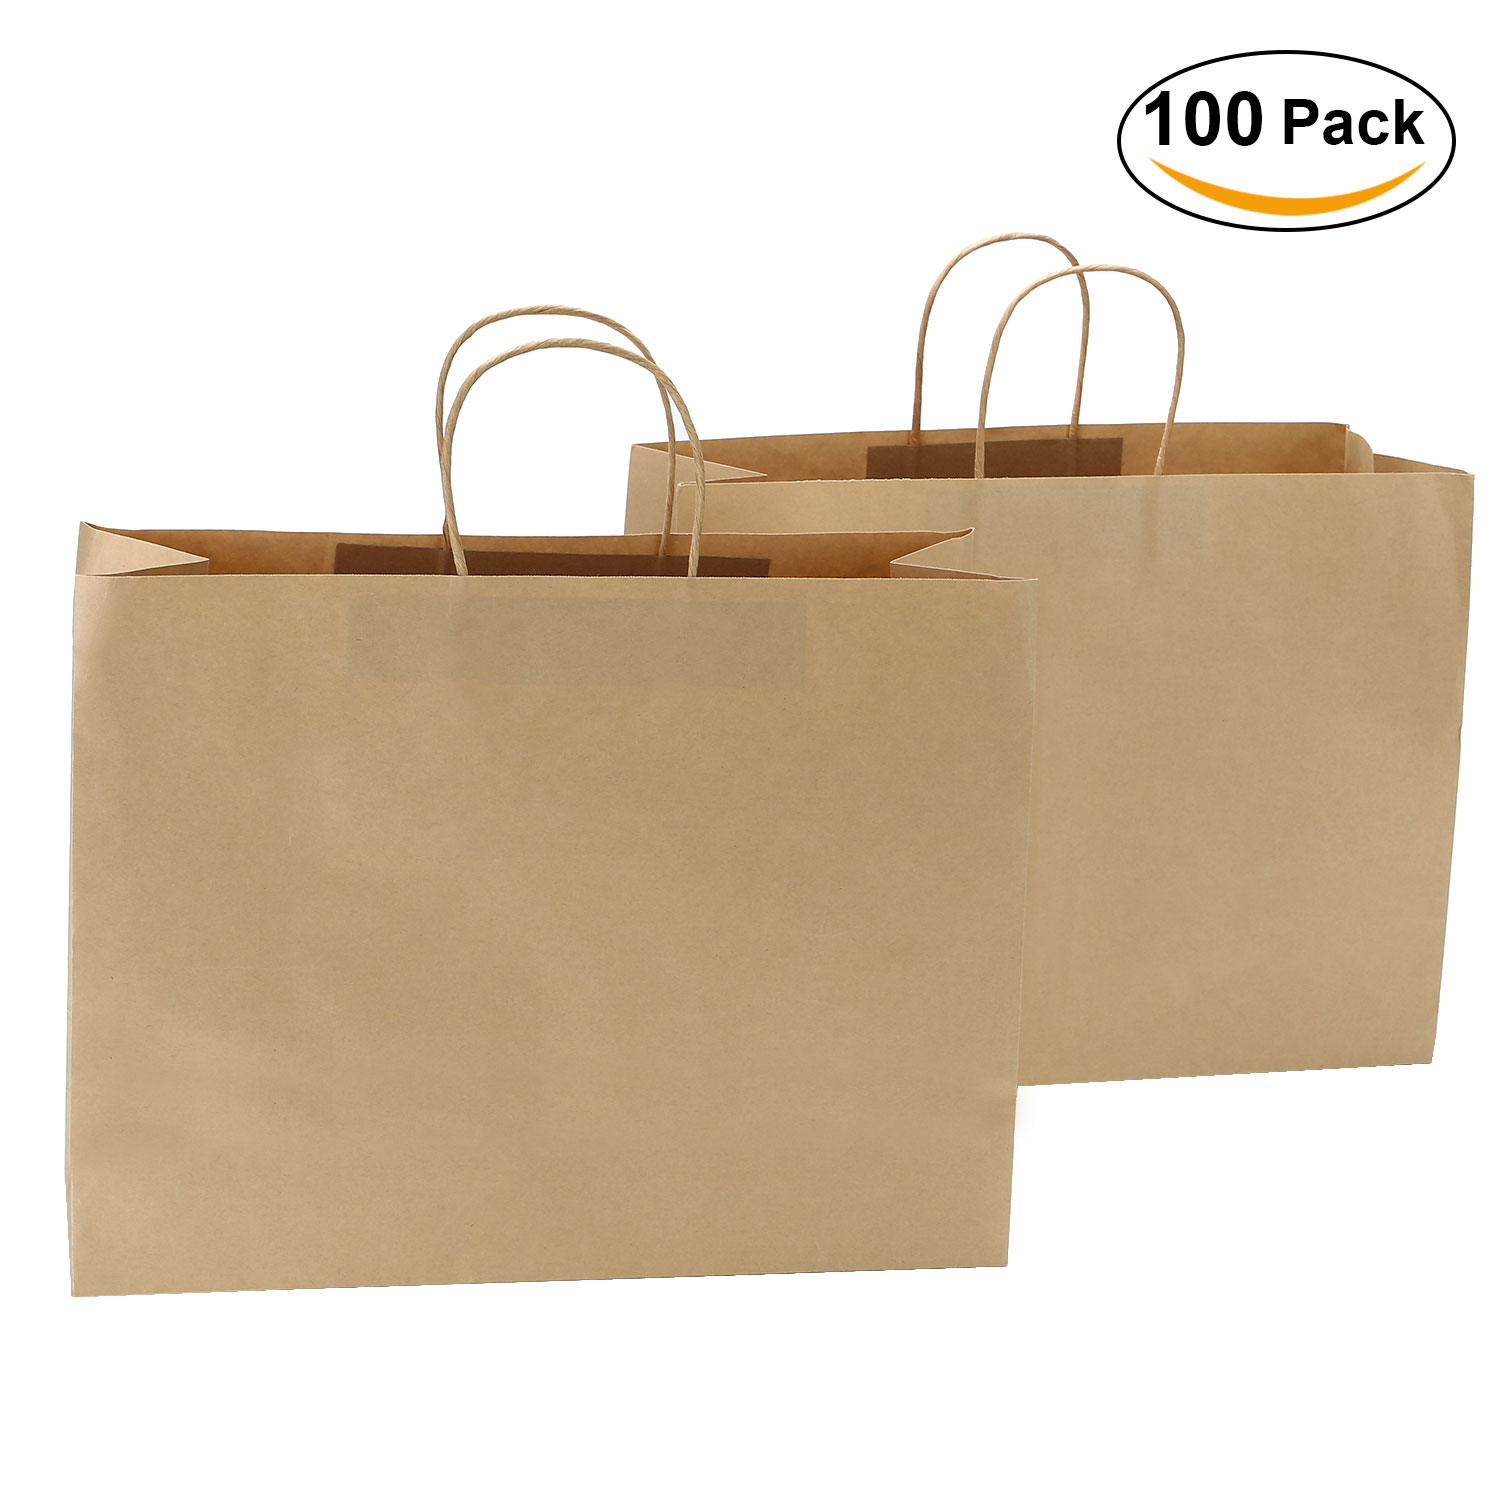 "TKOOFN 16.2"" x 6.1"" x 12"" Brown Kraft Paper Bags for Shopping Mechandise Party Gift ,100 Pcs"